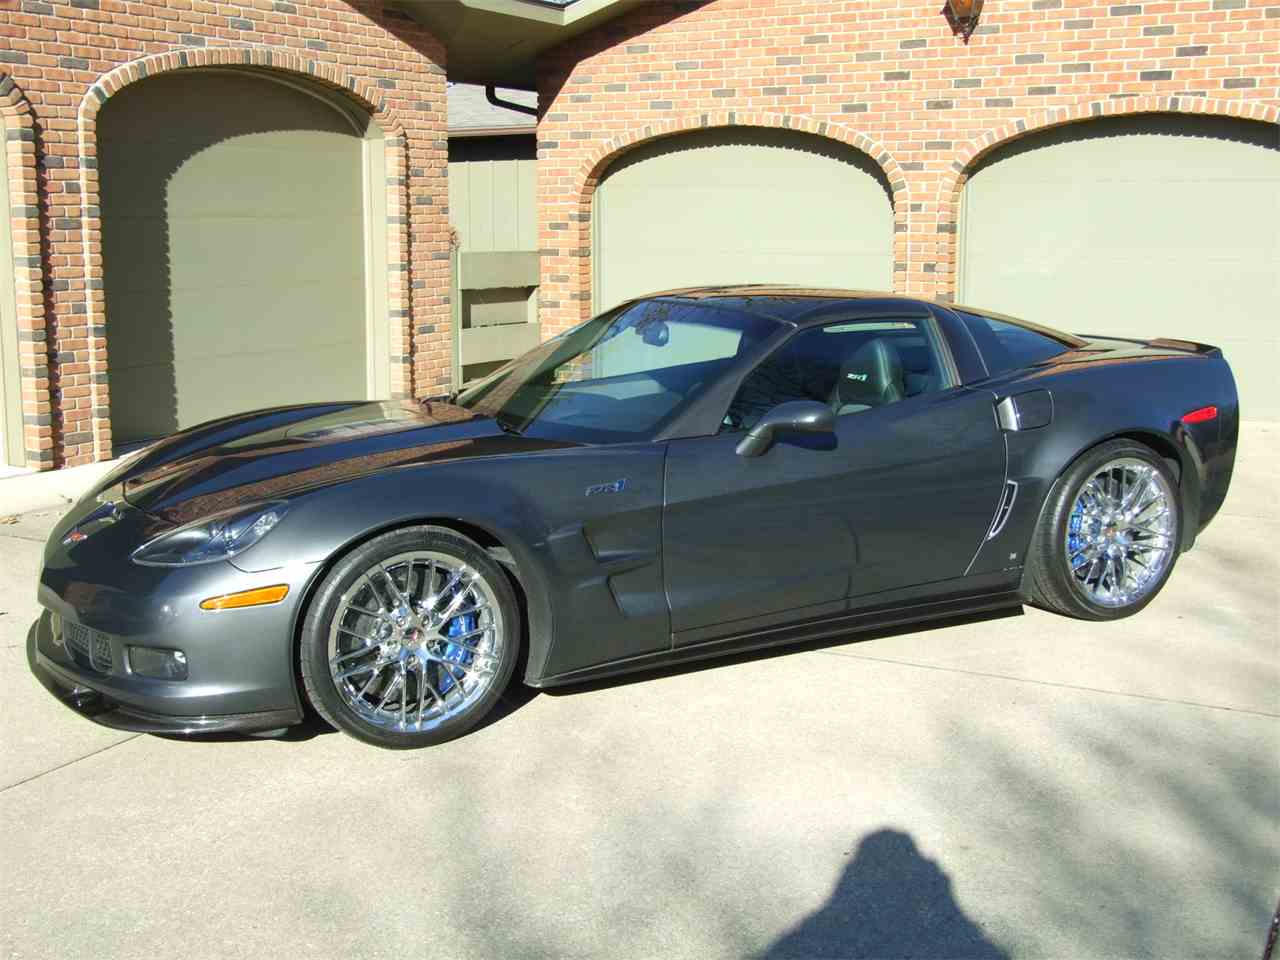 2009 chevrolet corvette zr1 for sale cc 631566. Black Bedroom Furniture Sets. Home Design Ideas